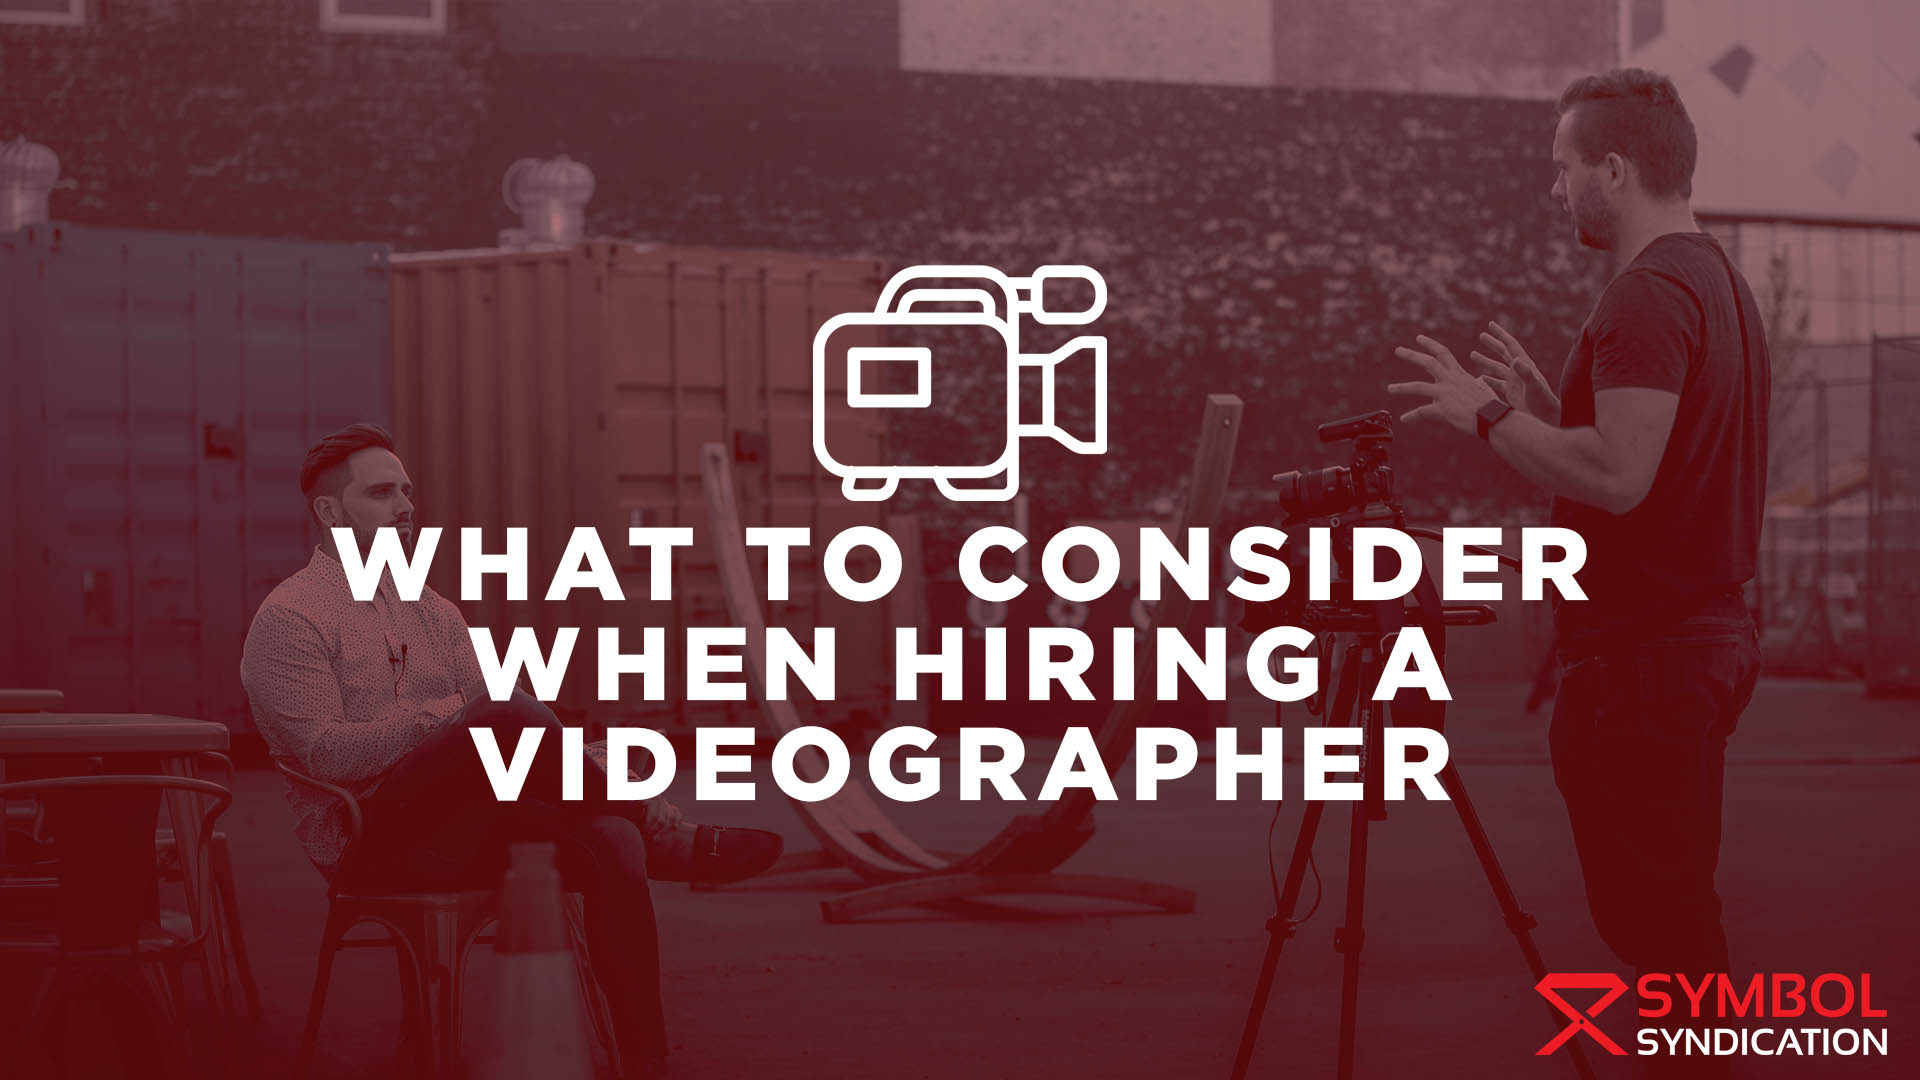 What to consider when hiring a videographer banner image